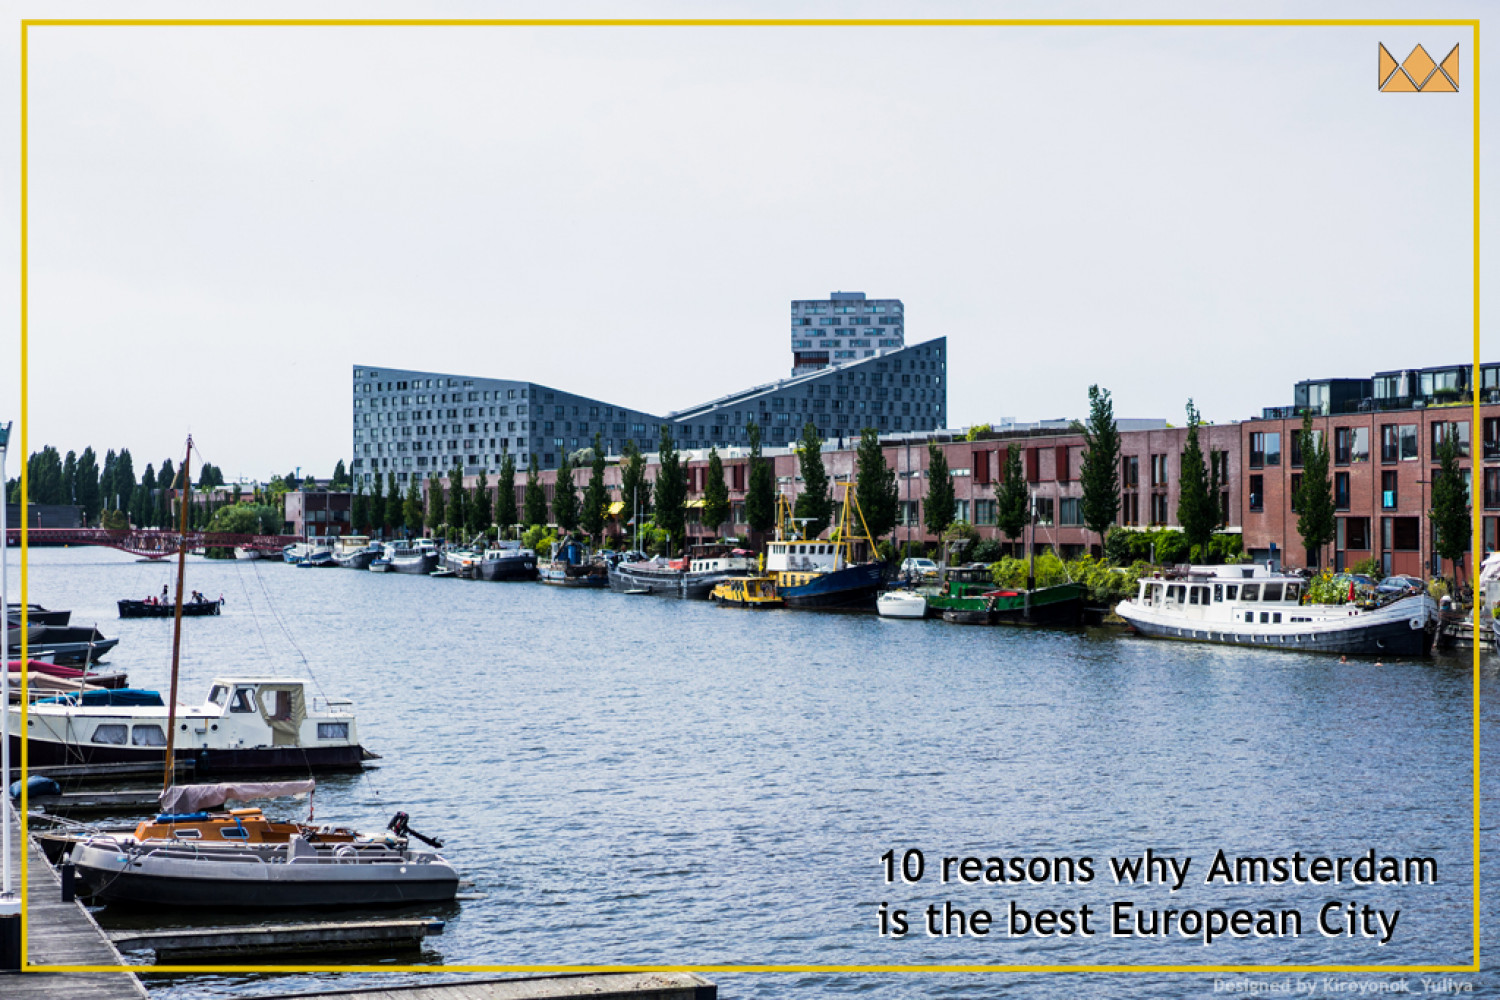 10 Reasons Why Amsterdam Is The Best European City Infographic